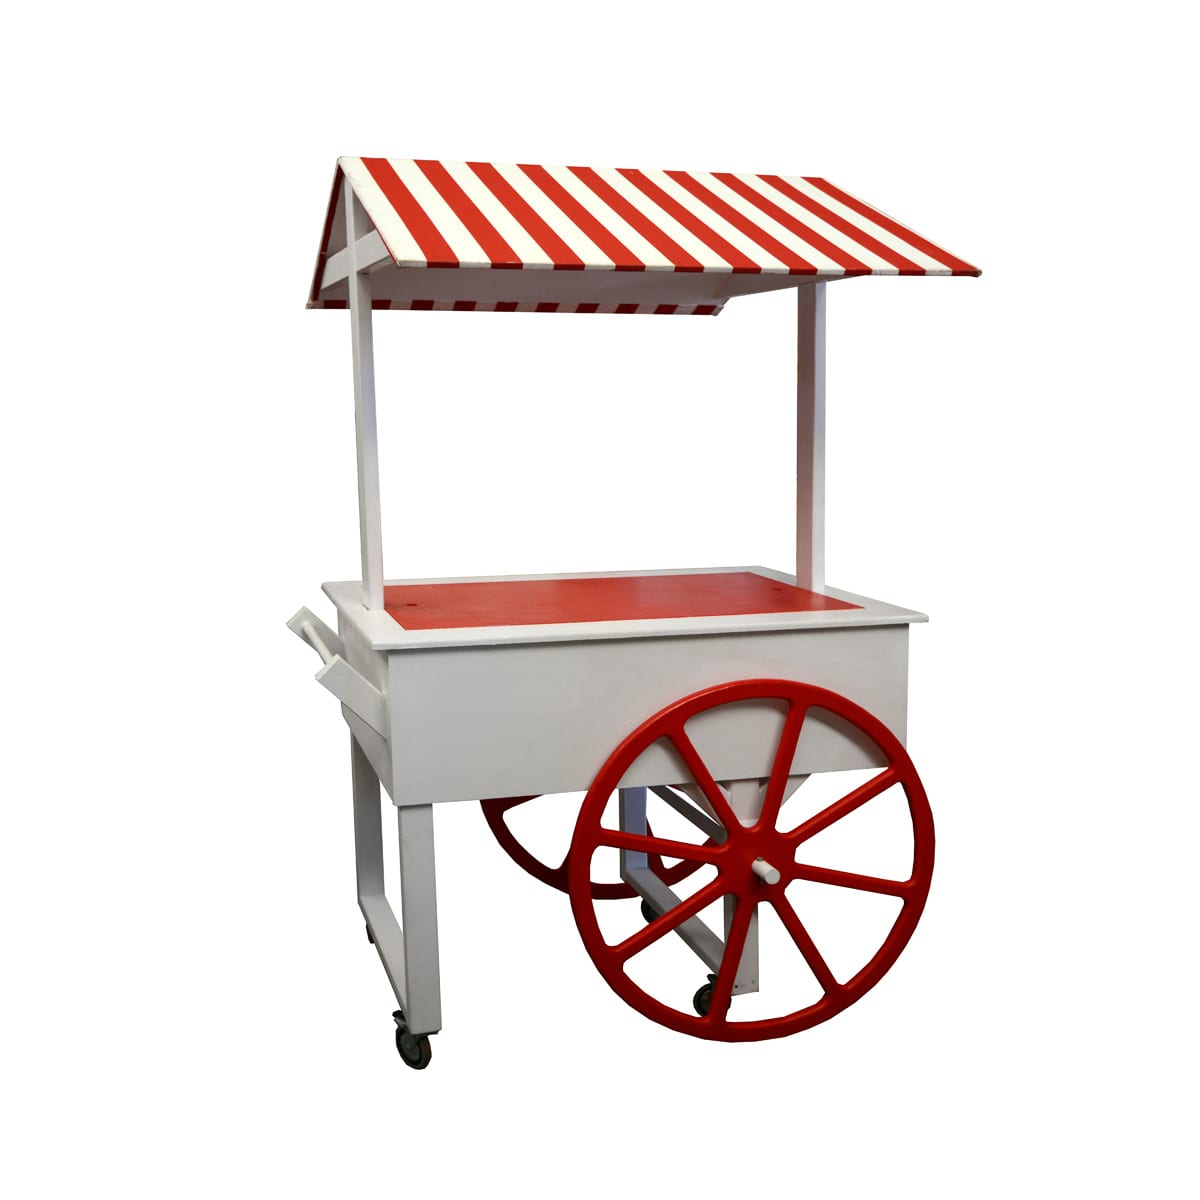 Cart 8 – Red and White Striped Food Cart